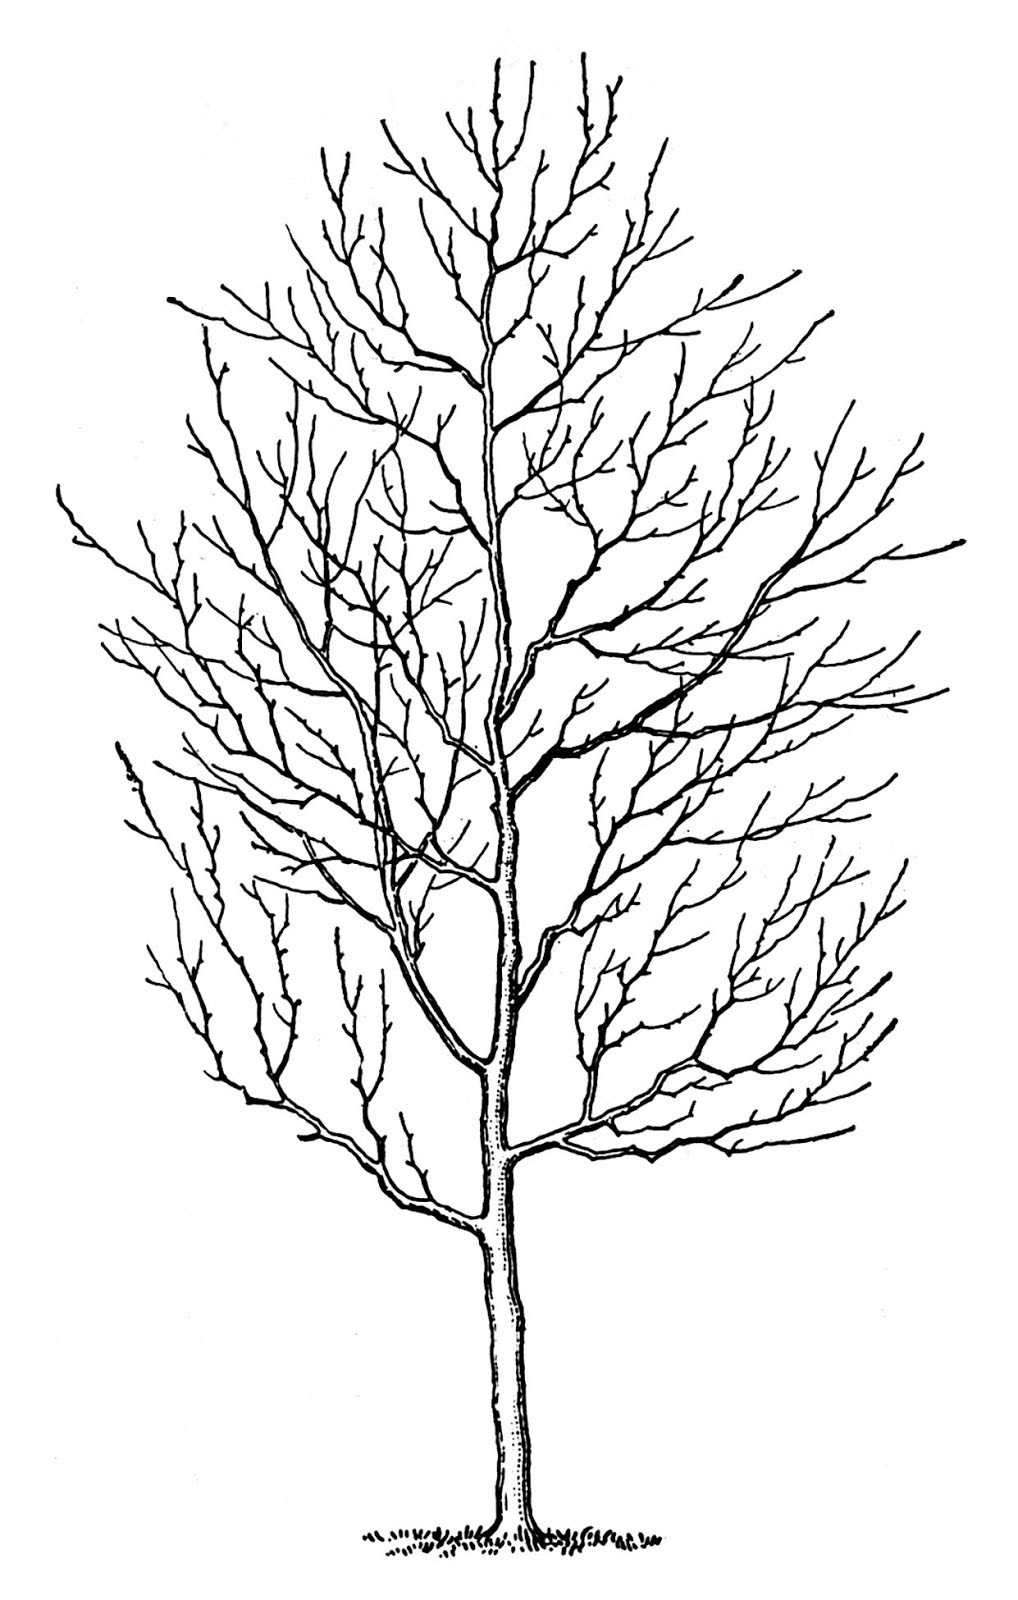 4 Winter Tree Images - Spooky! - The Graphics Fairy